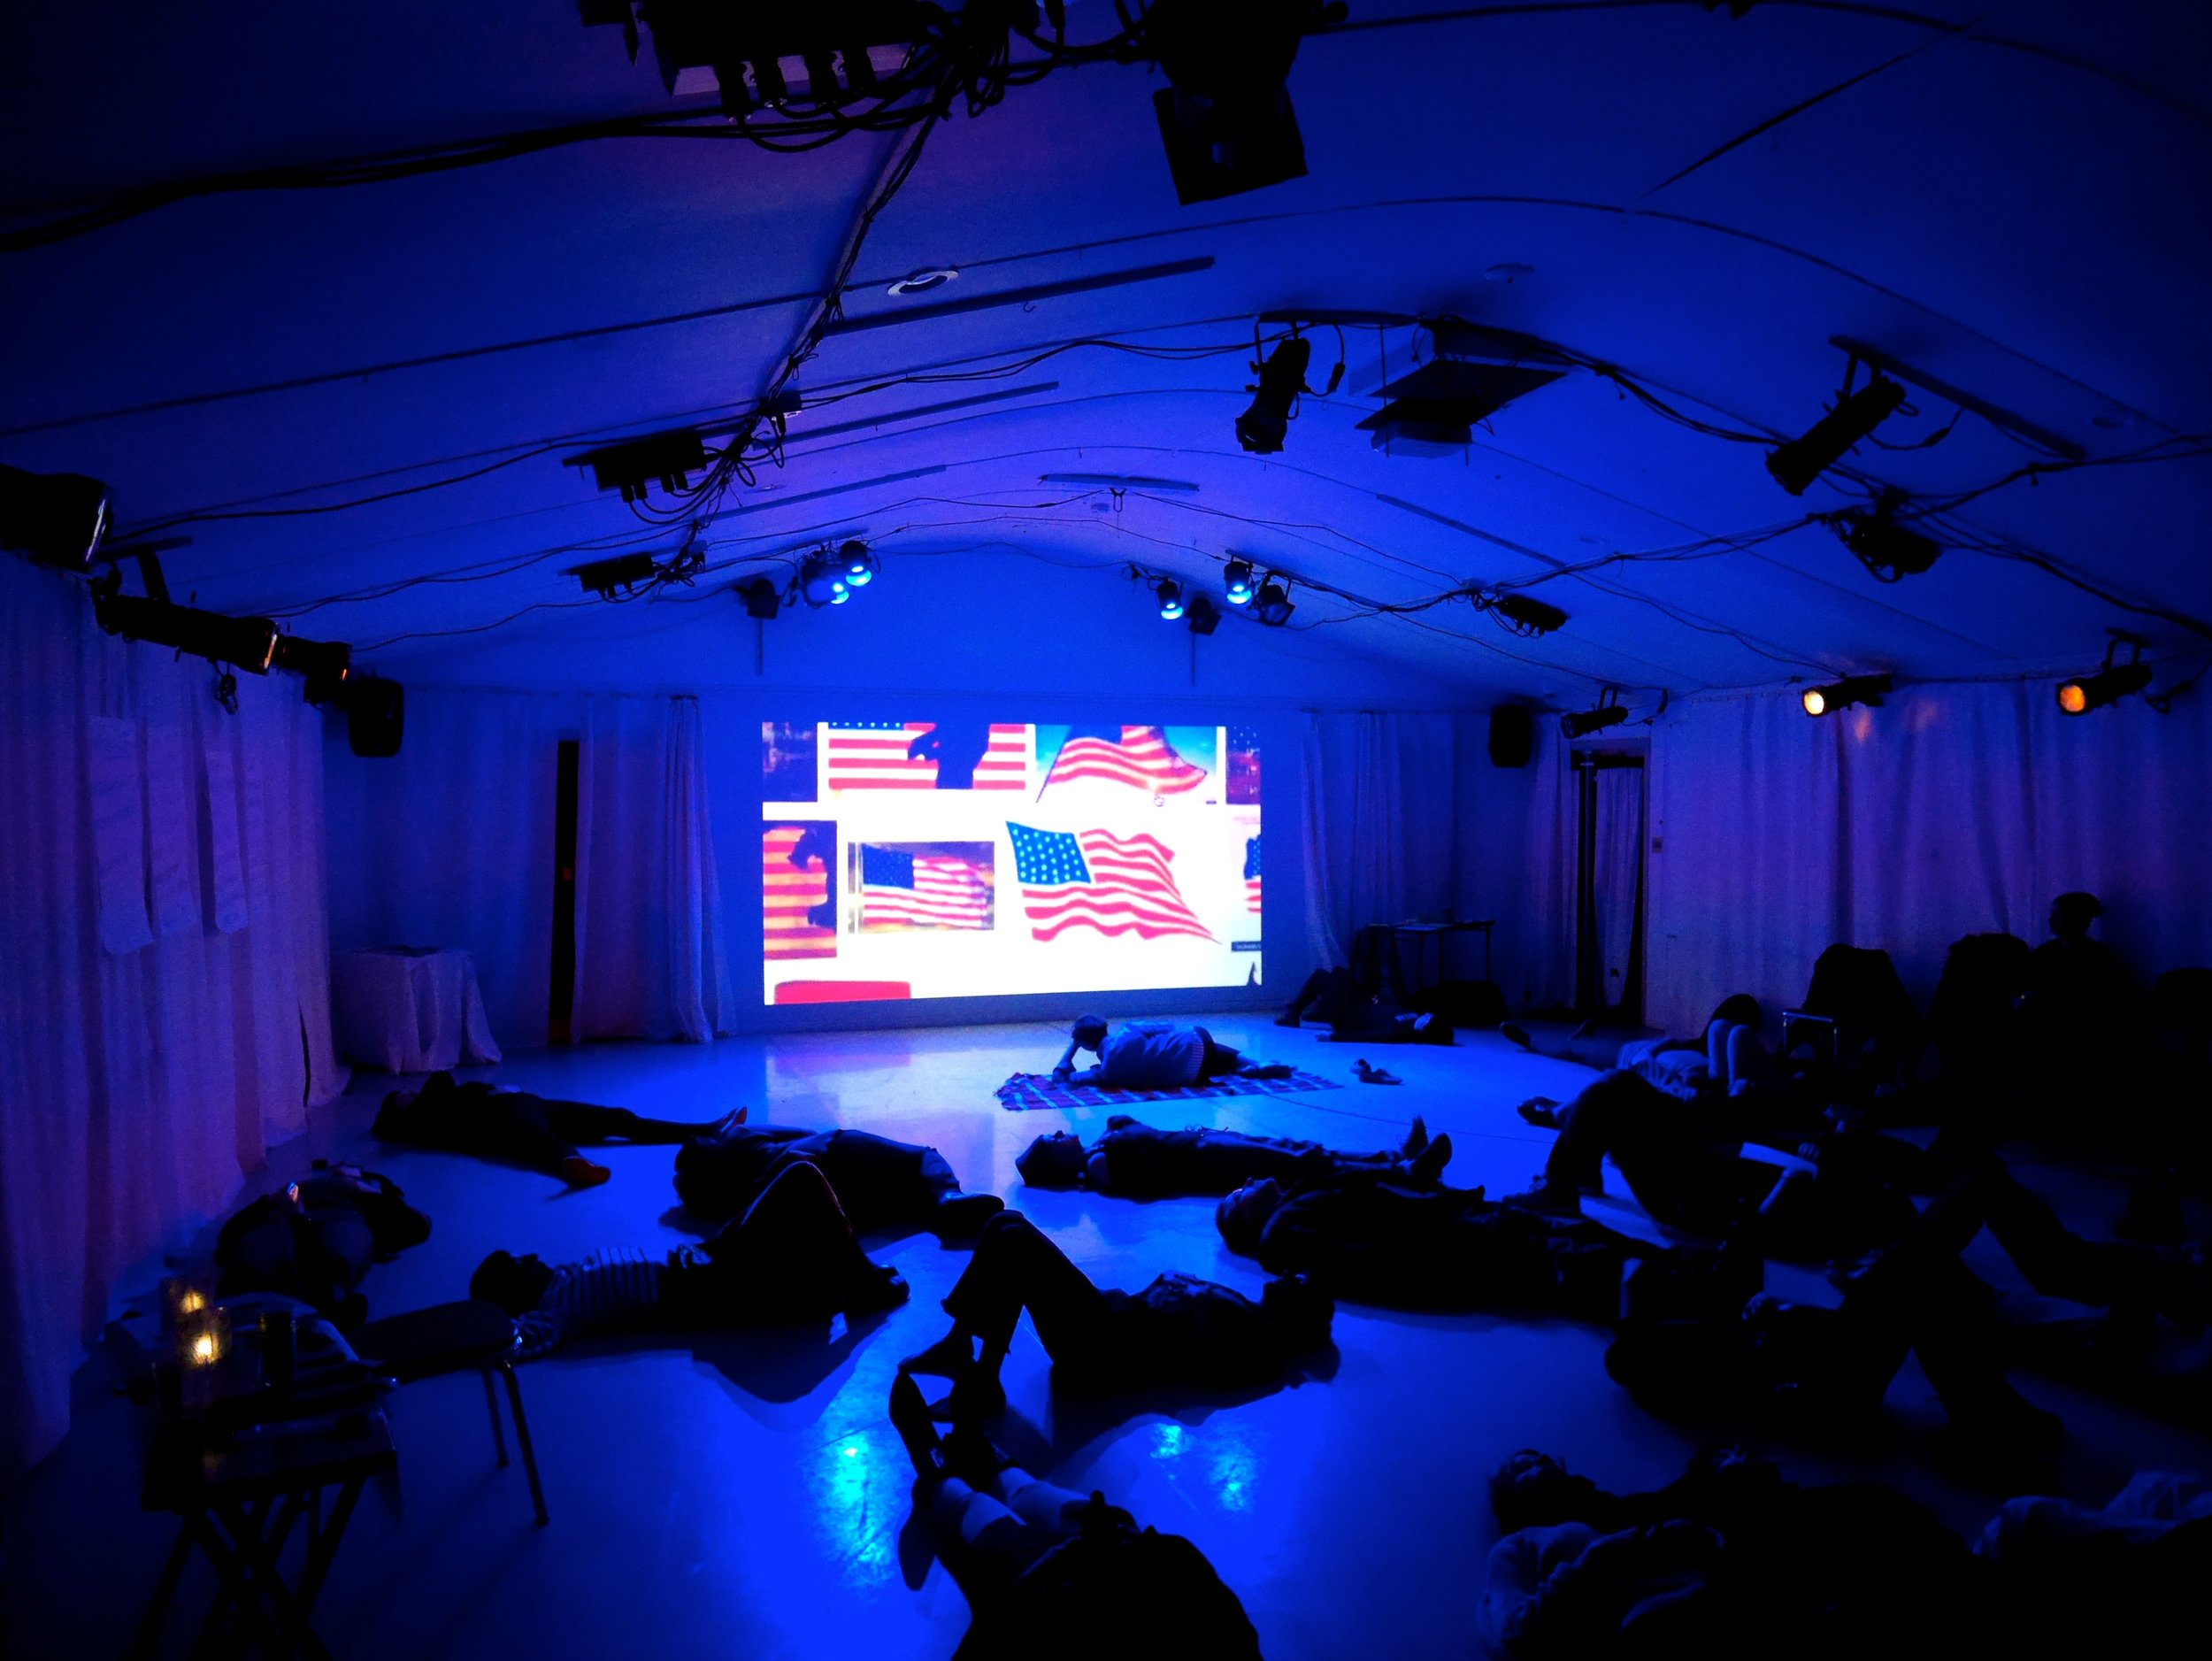 Performance (screening of video and words below) by Felicity Fenton – Photo by Kate Bredeson